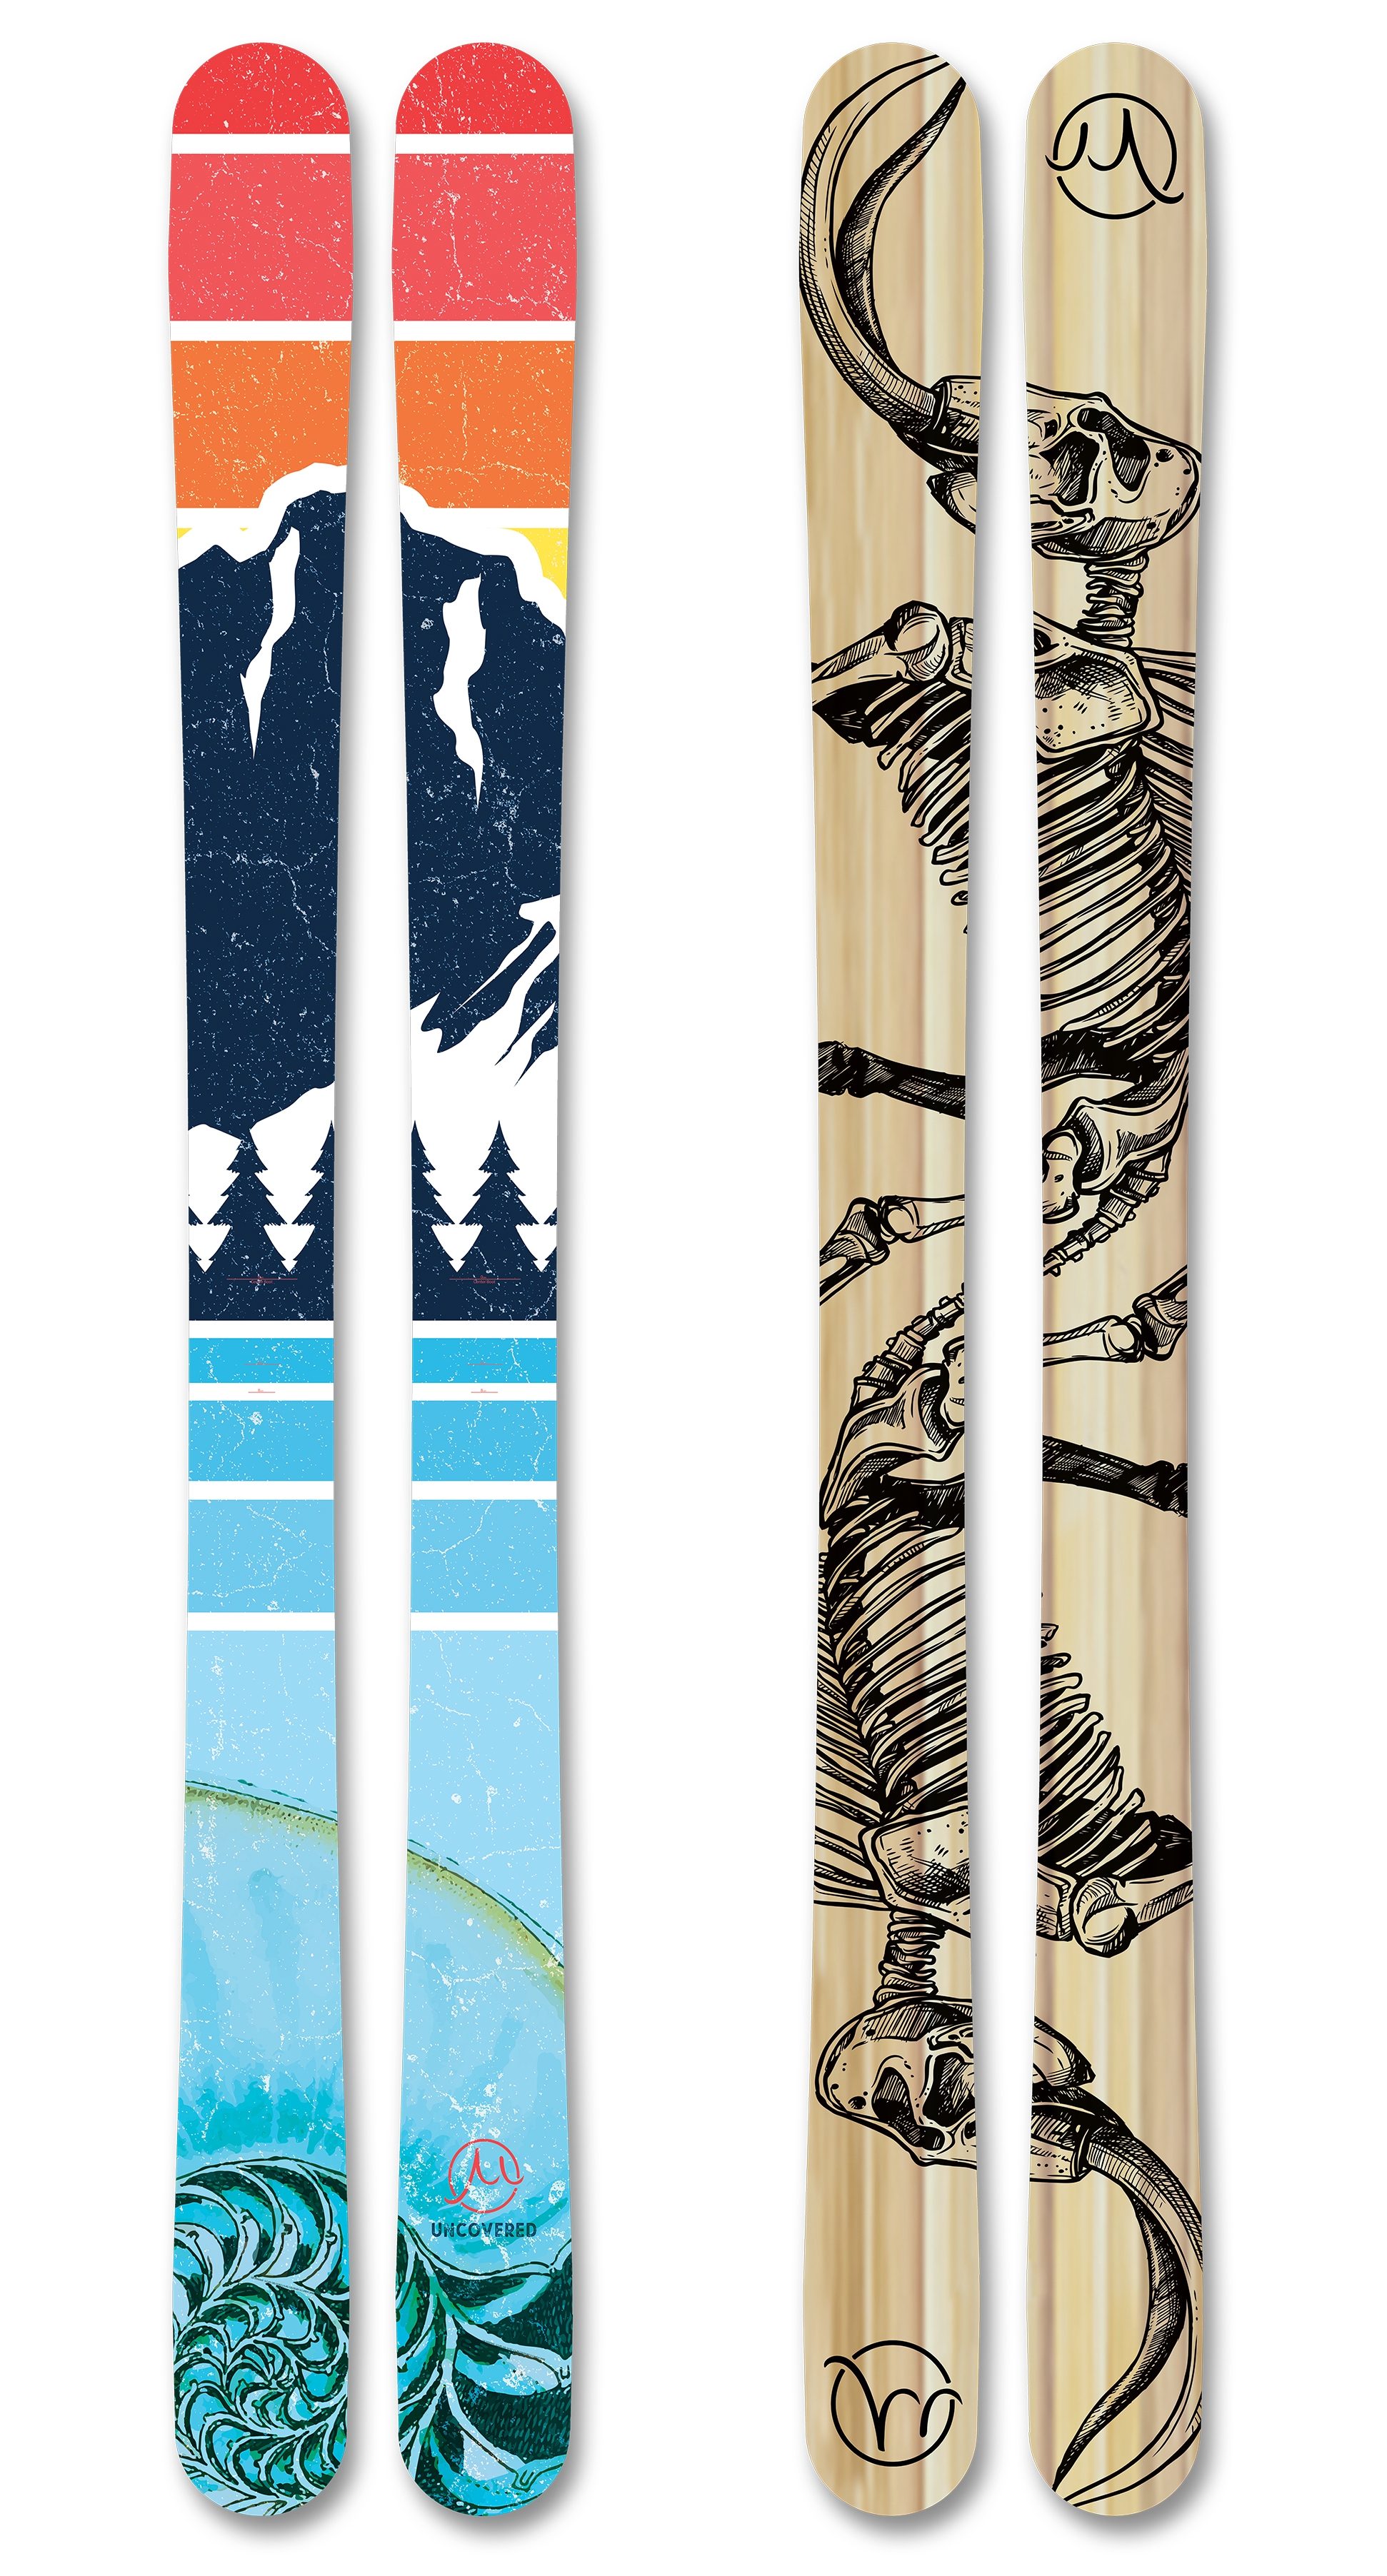 Uncovered skis large